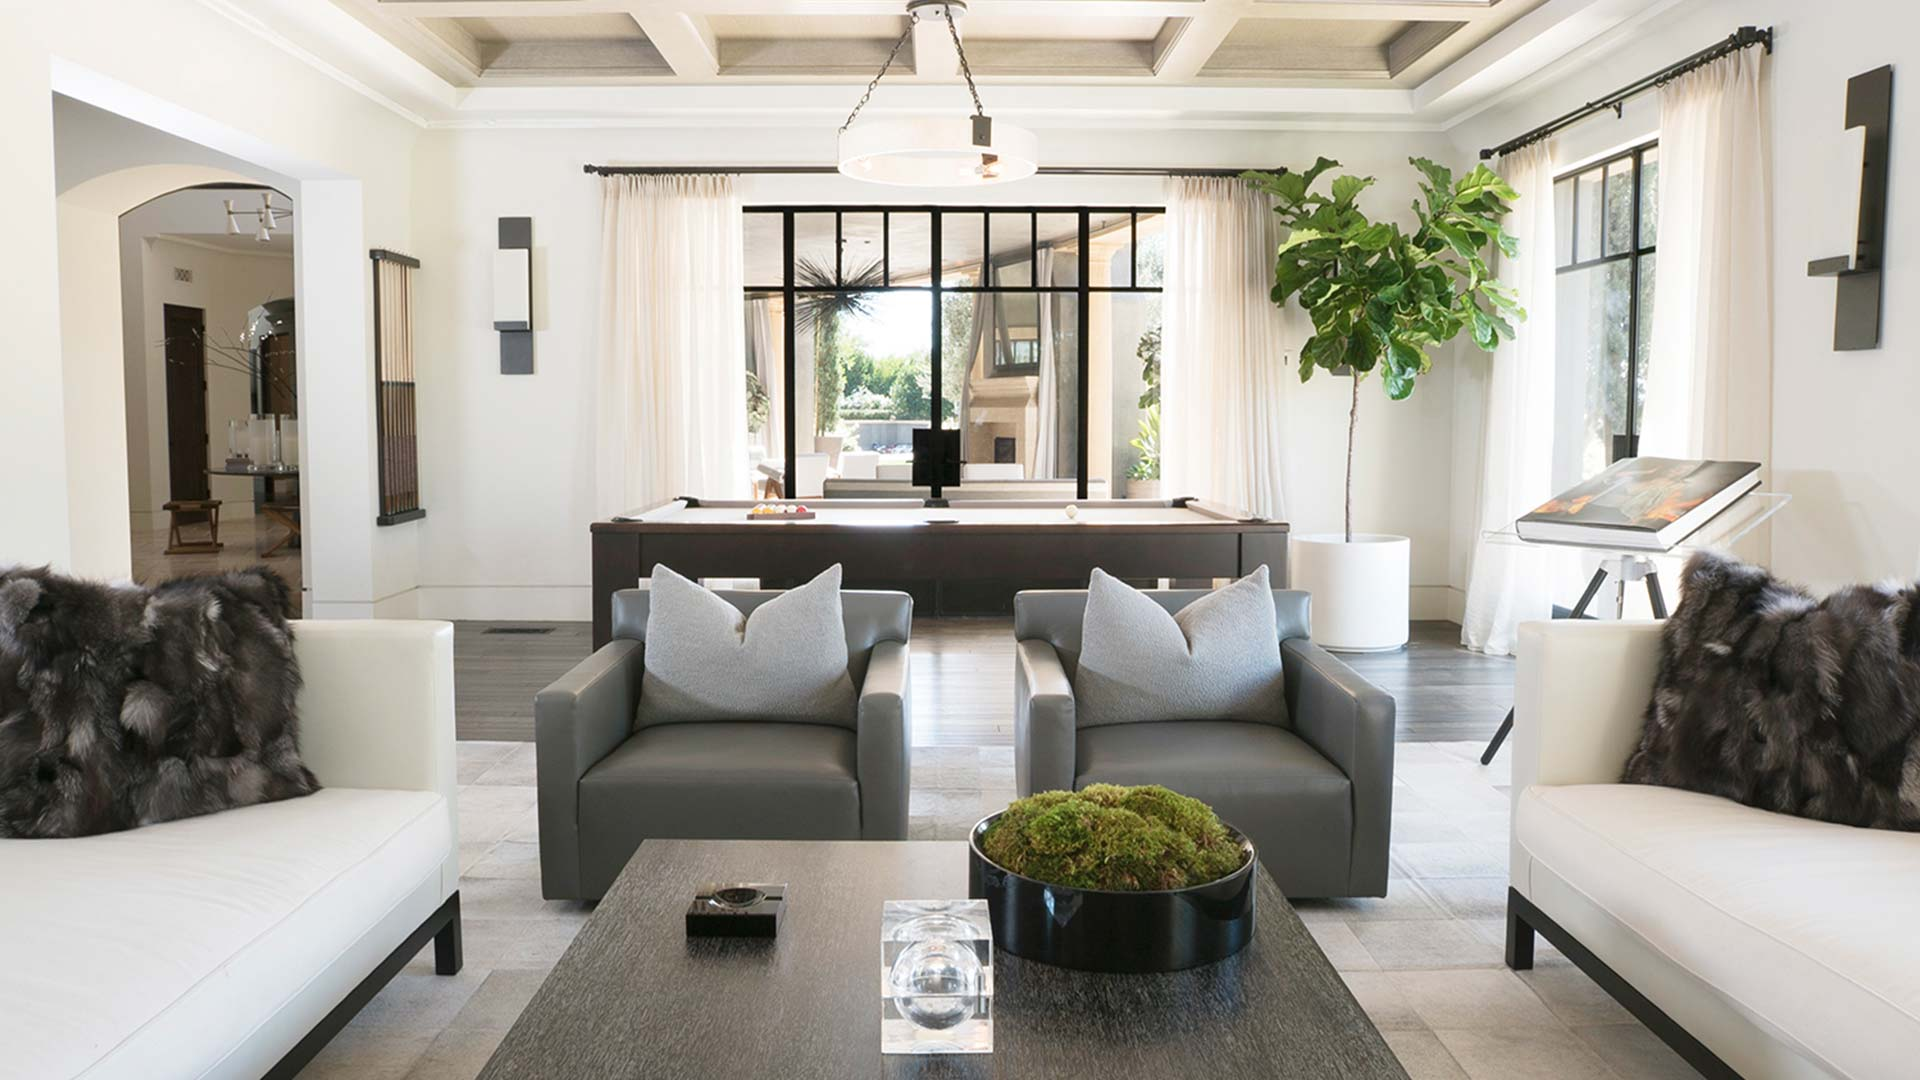 Simple Hacks For Home Renovation Your Money The Blog